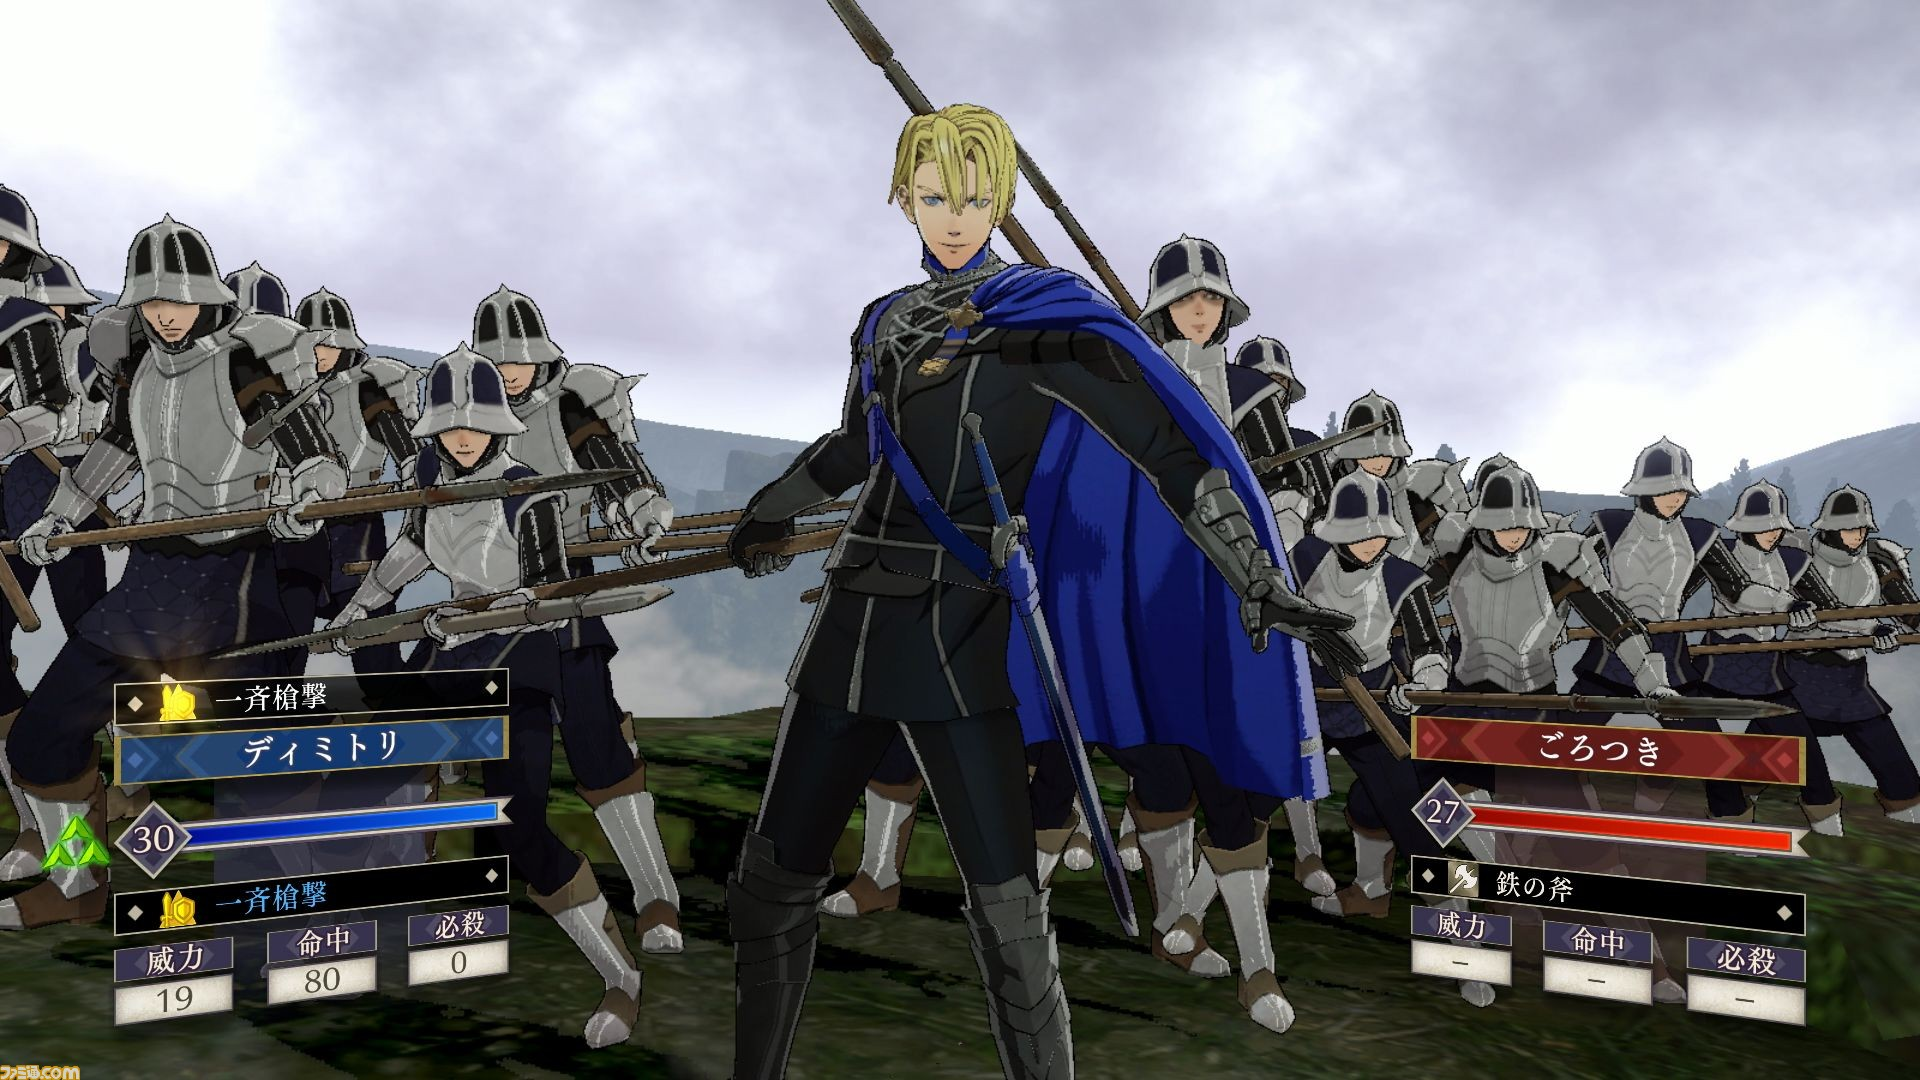 https://www.perfectly-nintendo.com/wp-content/uploads/sites/1/nggallery/fire-emblem-three-houses-15-05-2019/27.jpg